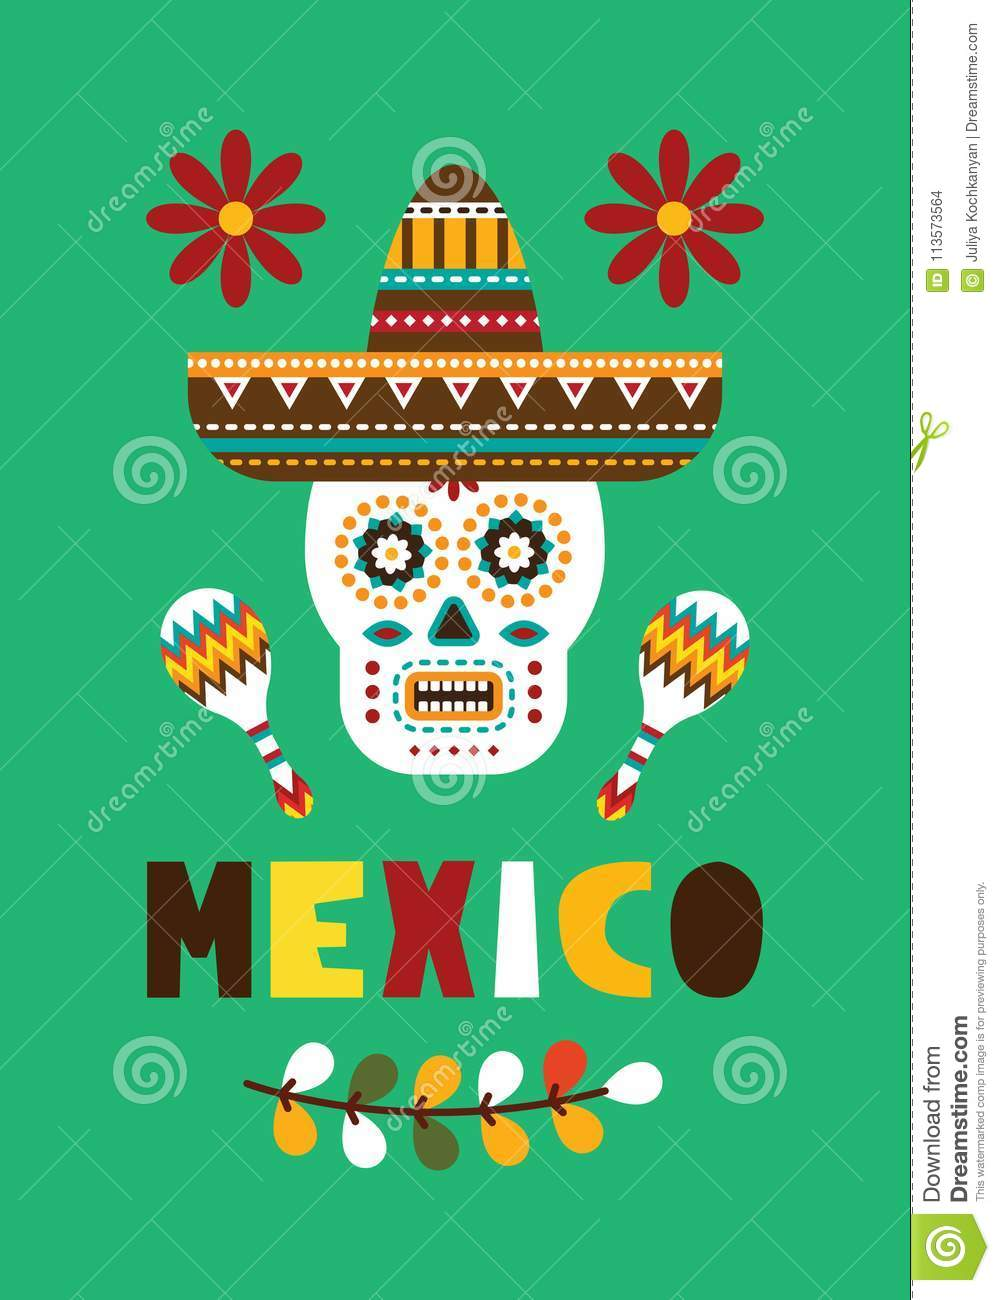 Mexican folk card invitation stock vector illustration of download mexican folk card invitation stock vector illustration of decorative holiday 113573564 stopboris Image collections